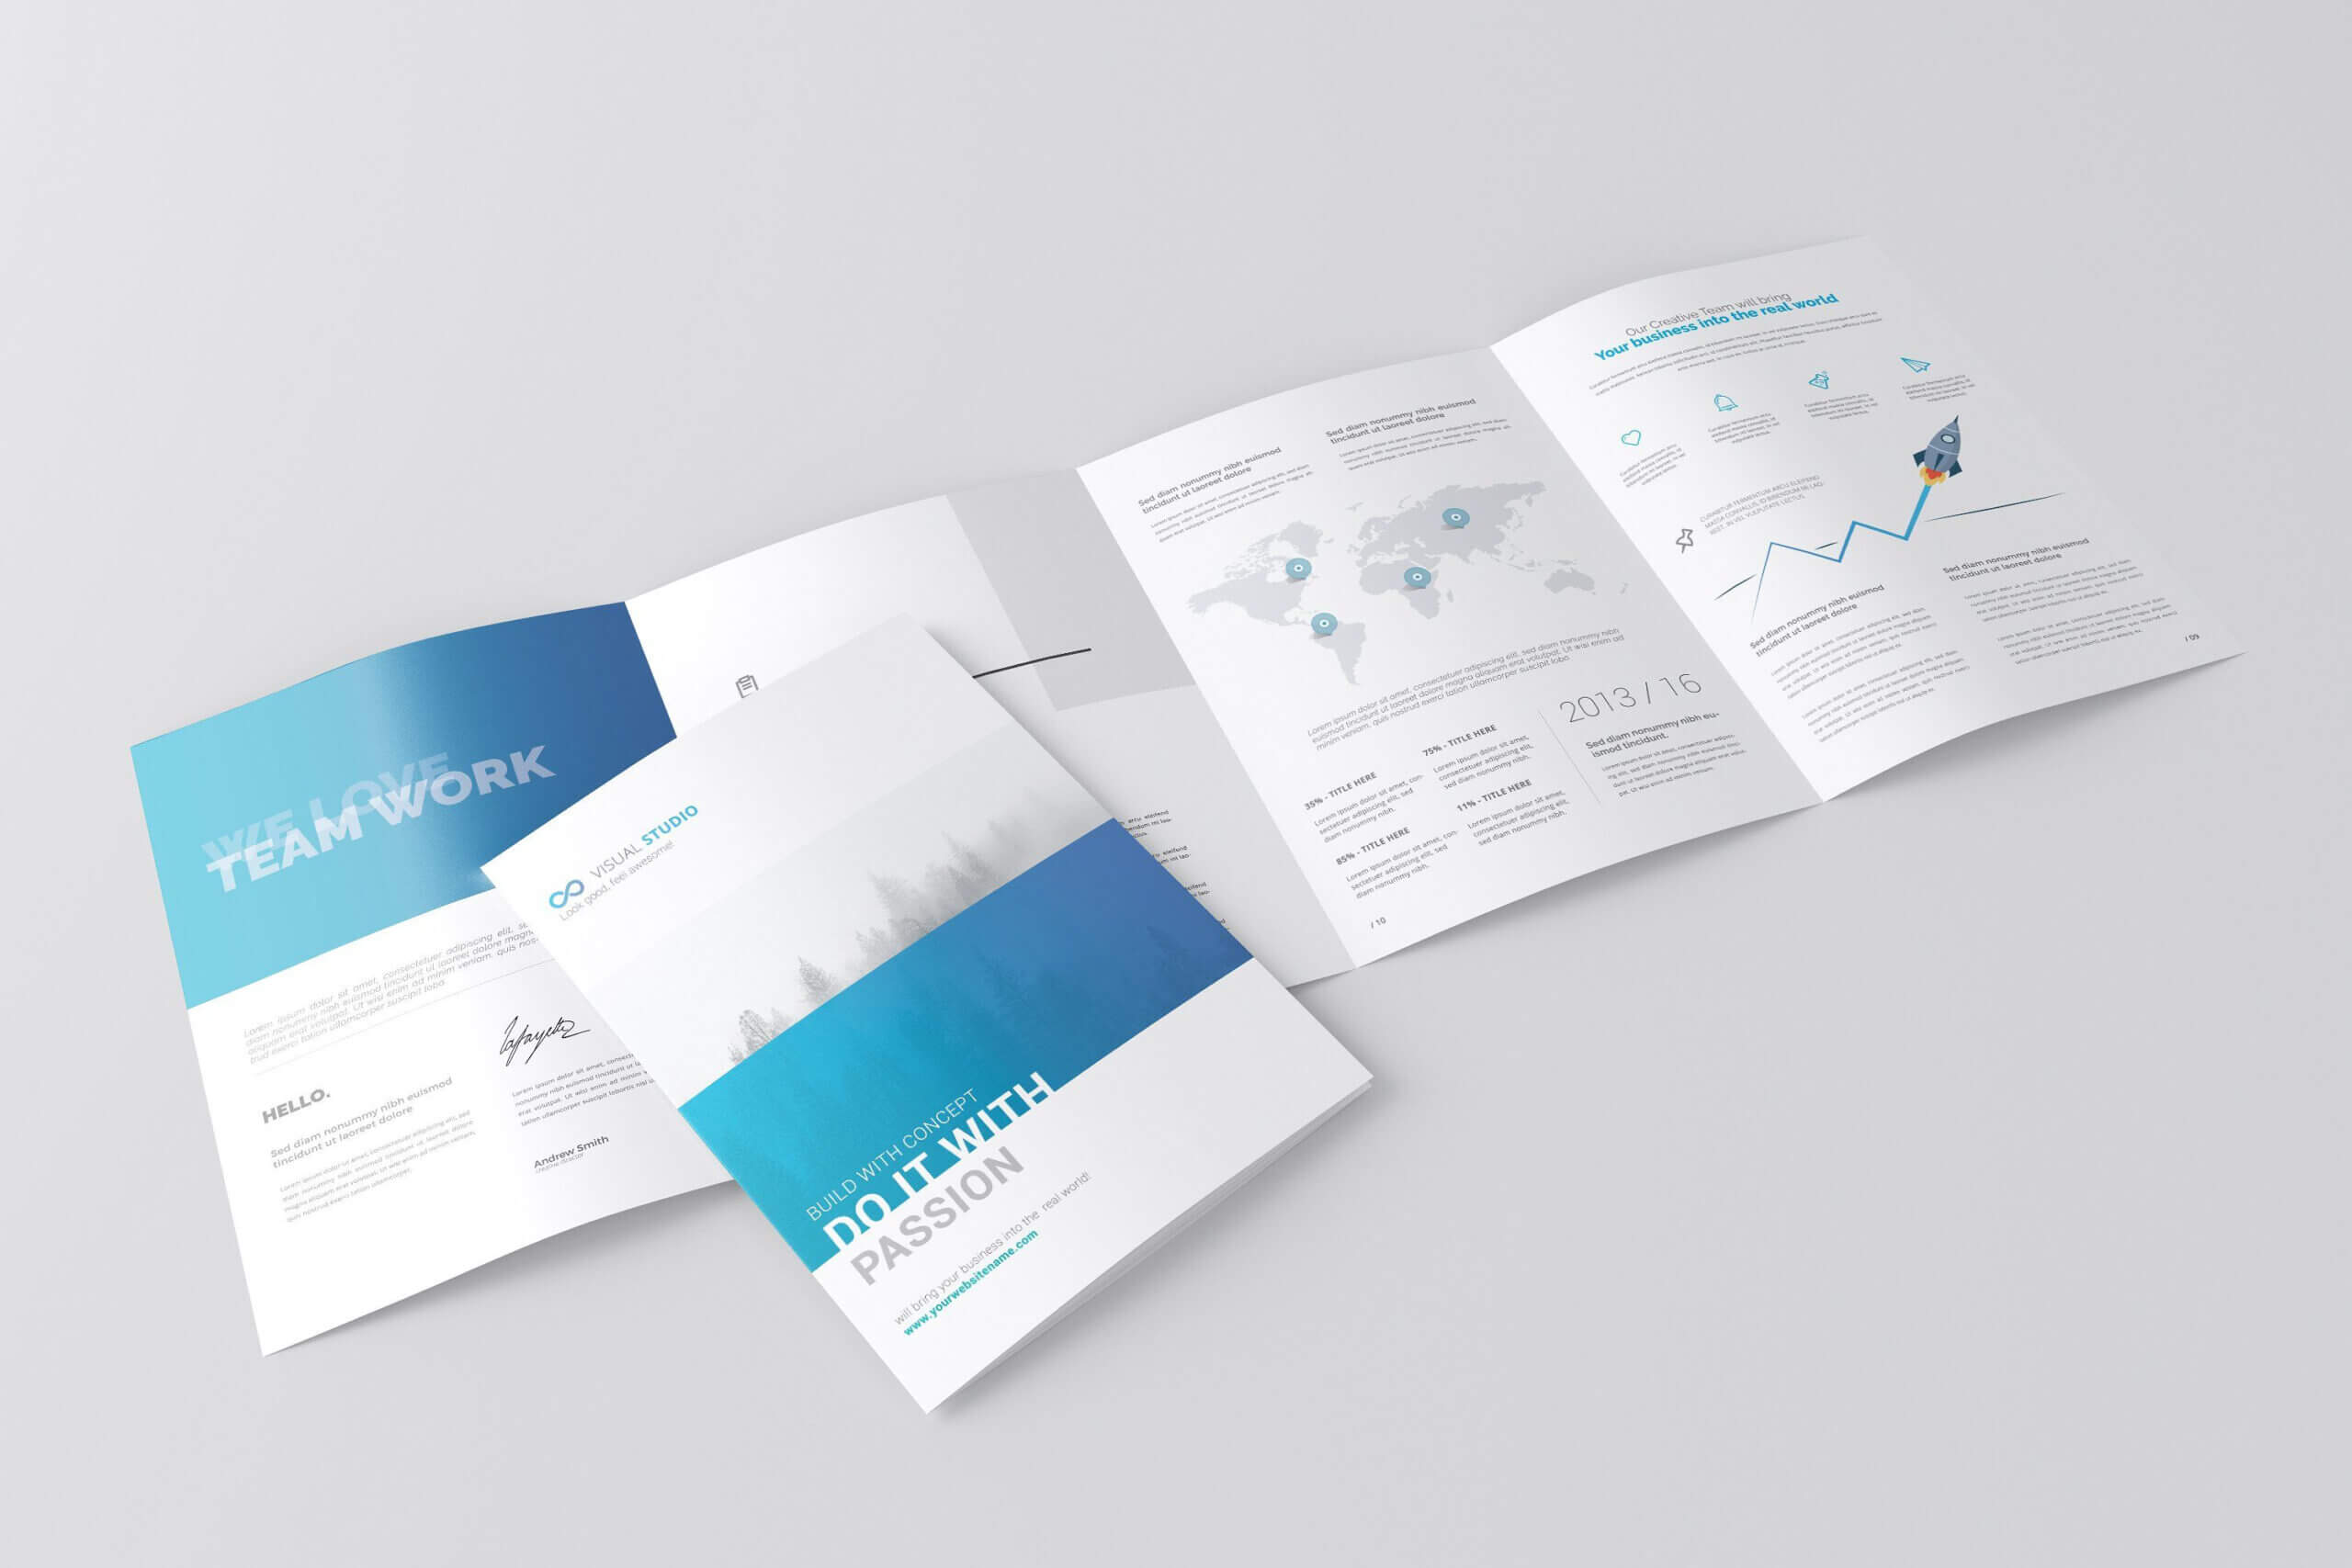 A4 4 Fold Brochure Mockuptoasin Studio On Within 4 Fold Brochure Template Word